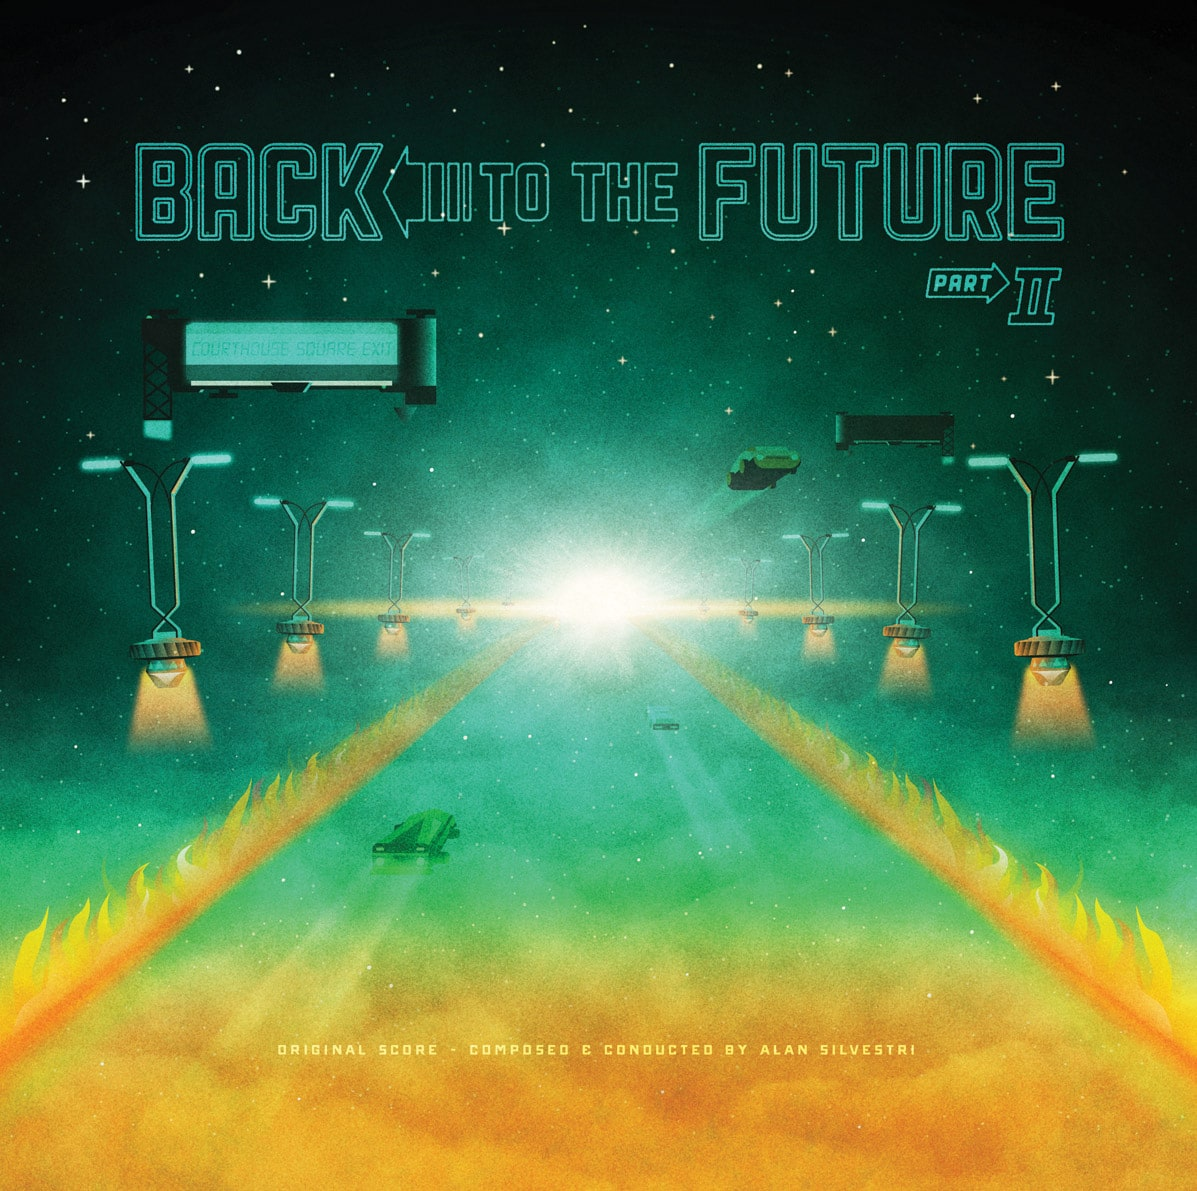 Back to the Future 2 Soundtrack Record Cover by DKNG